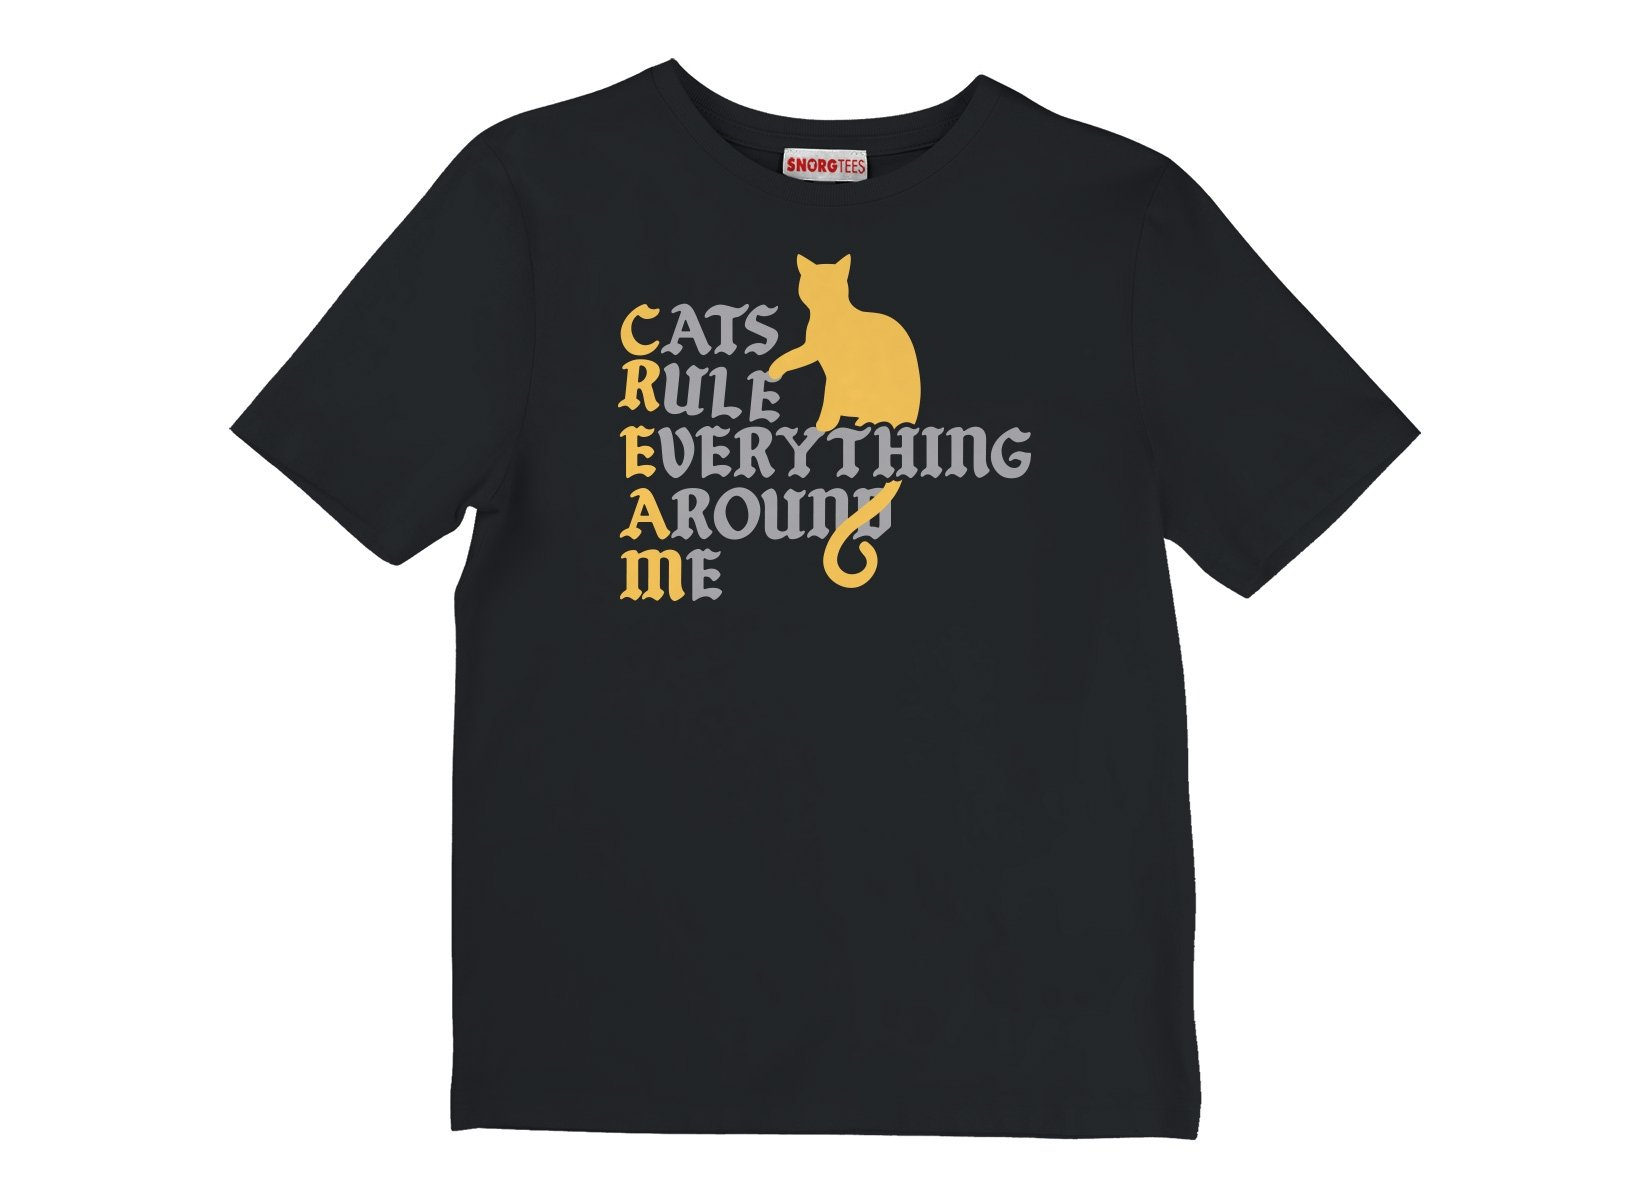 Cats Rule Everything Around Me on Kids T-Shirt